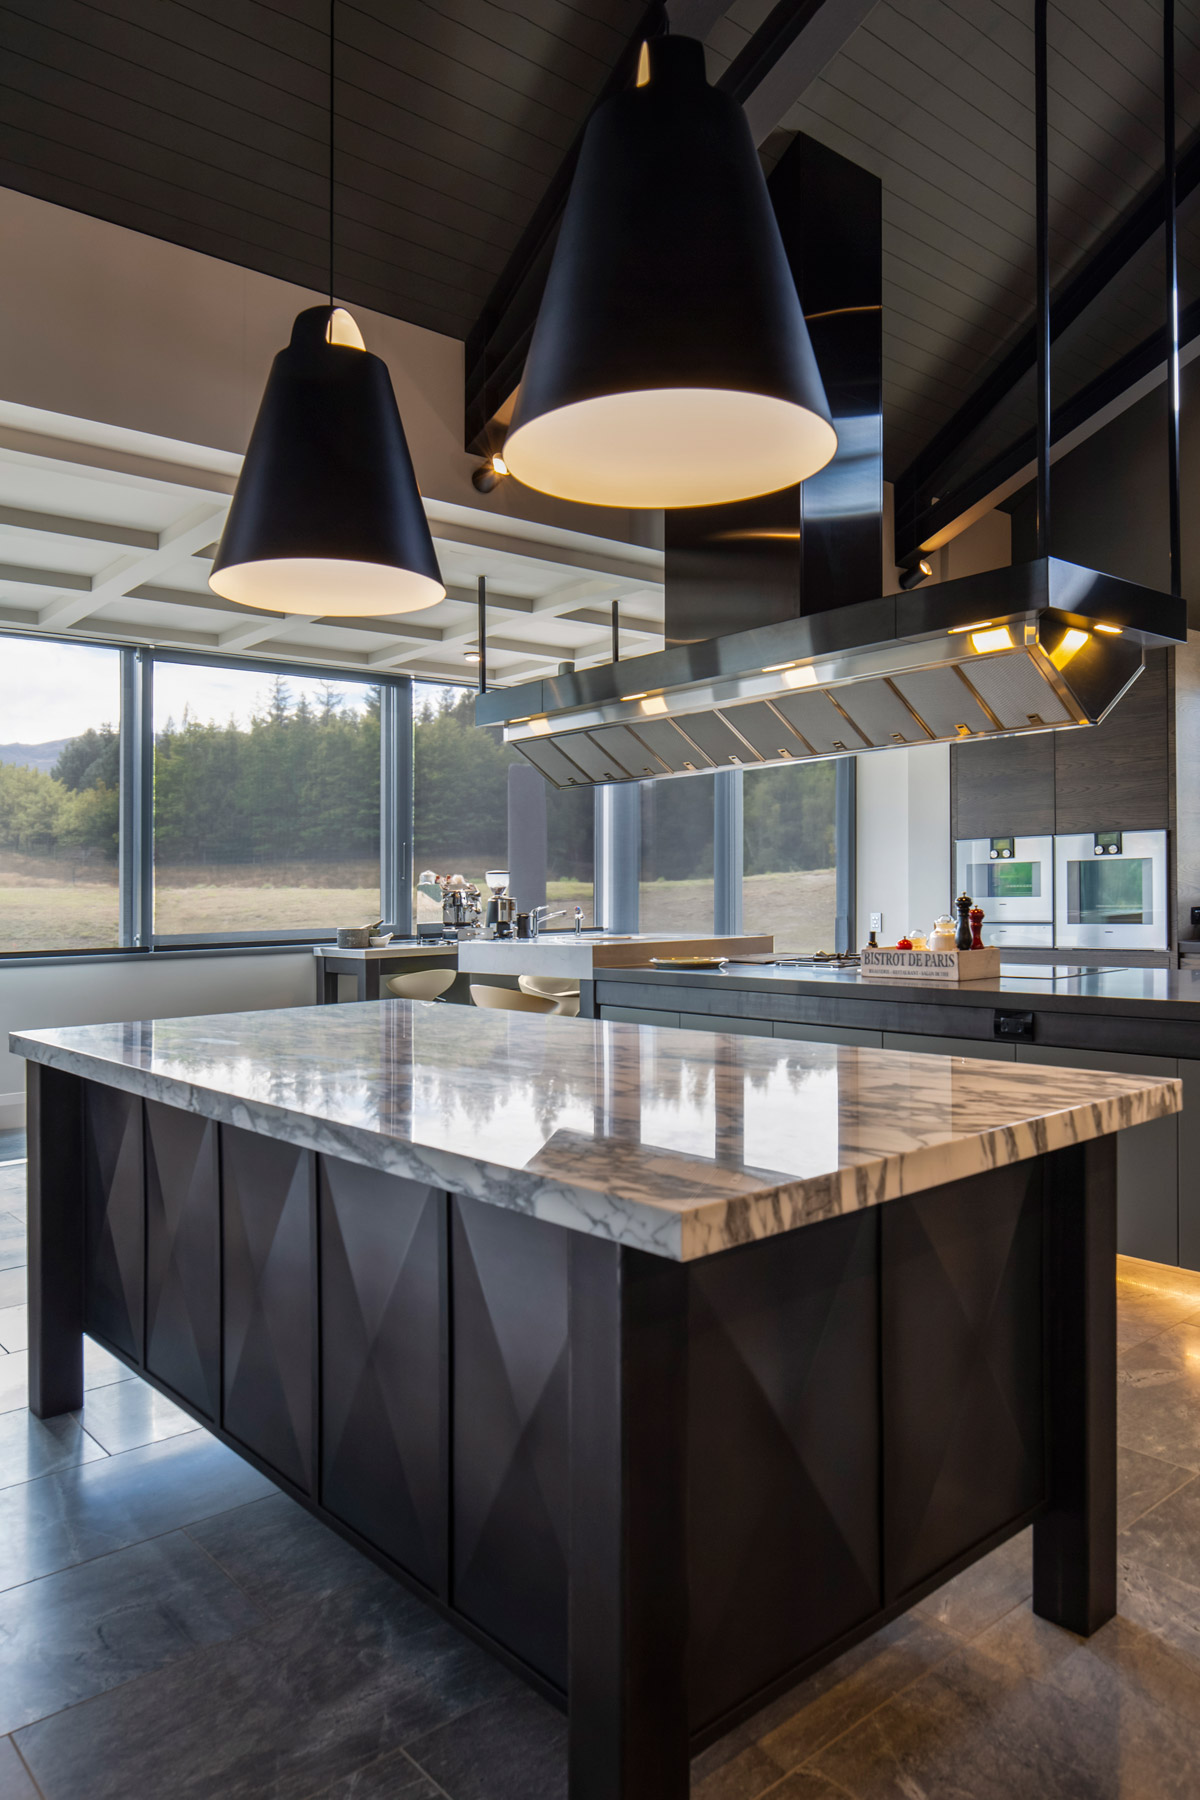 kbb design, Contemporary Kitchen Design with Commercial Modernity and Oriental Influence